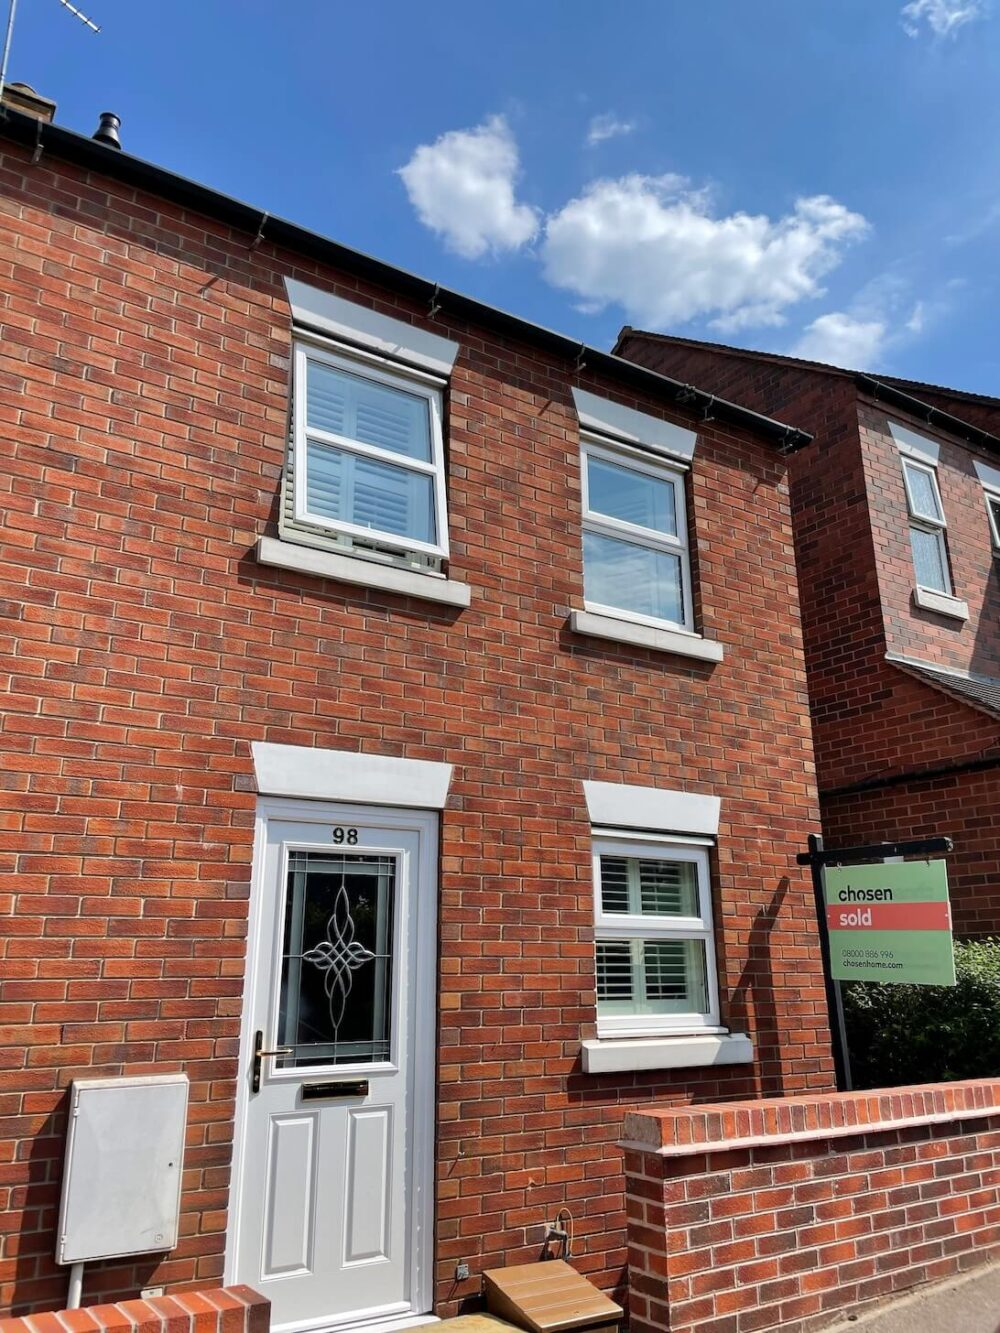 sell your home in sutton coldfield front view of house recently sold